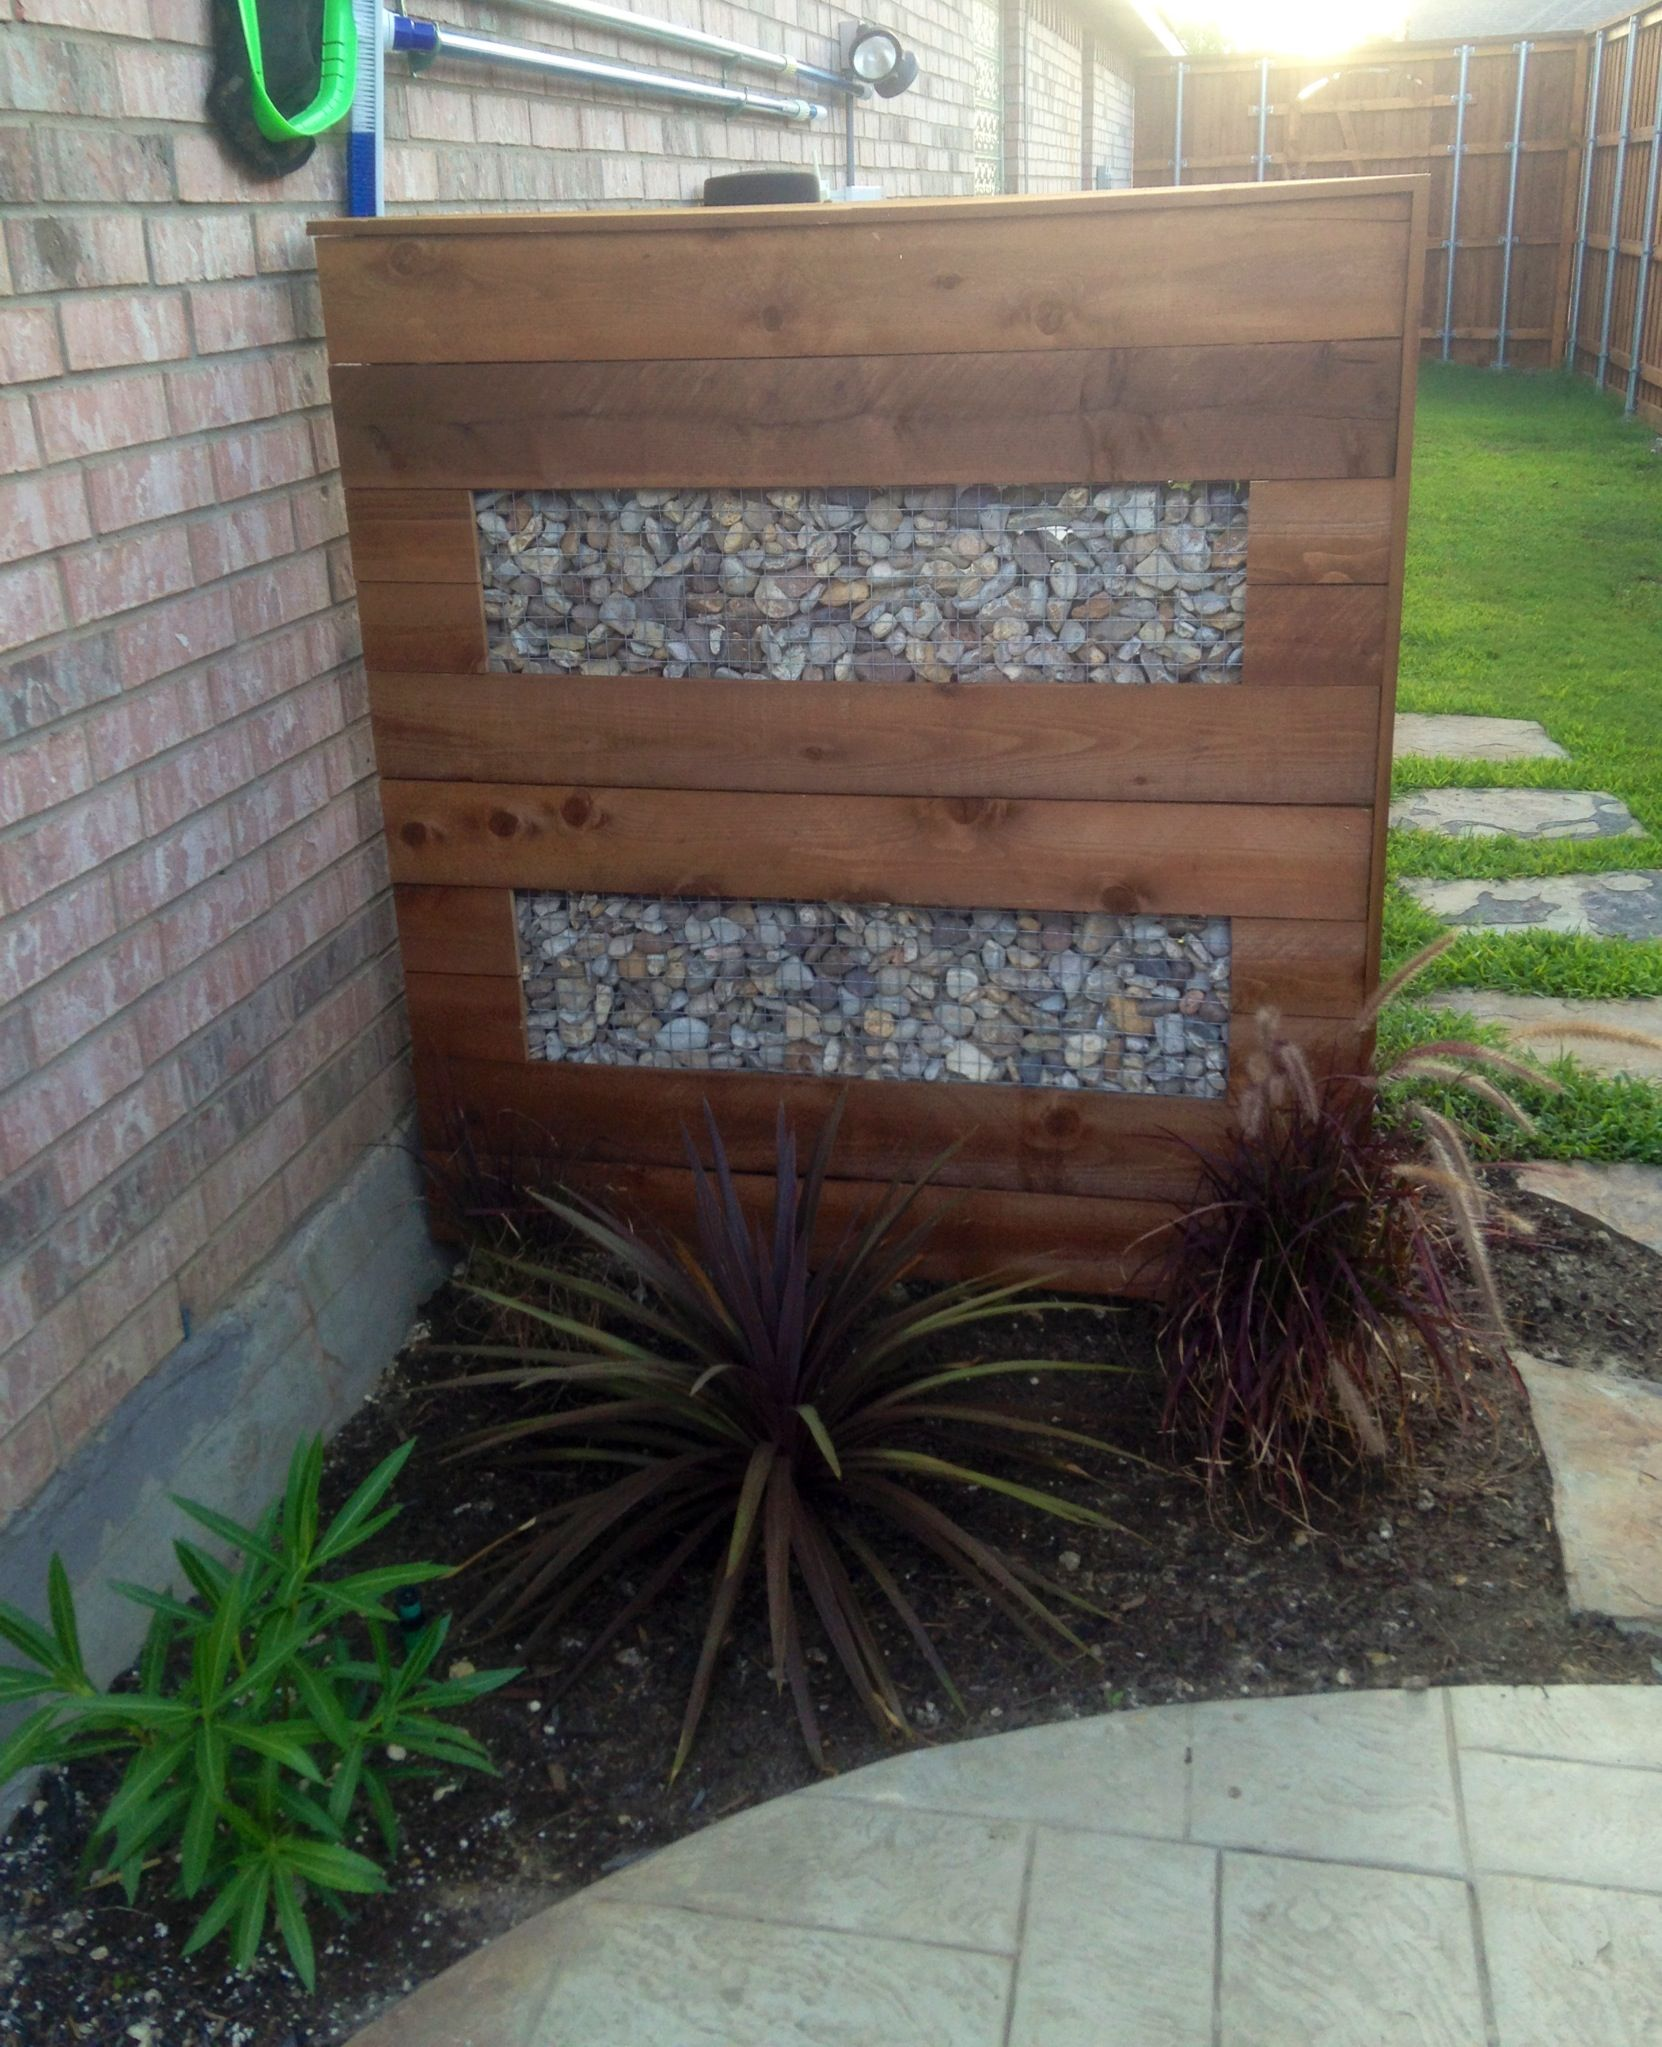 Decorative wall to hide the pool equipment! | Lawn \u0026 Gardening ...